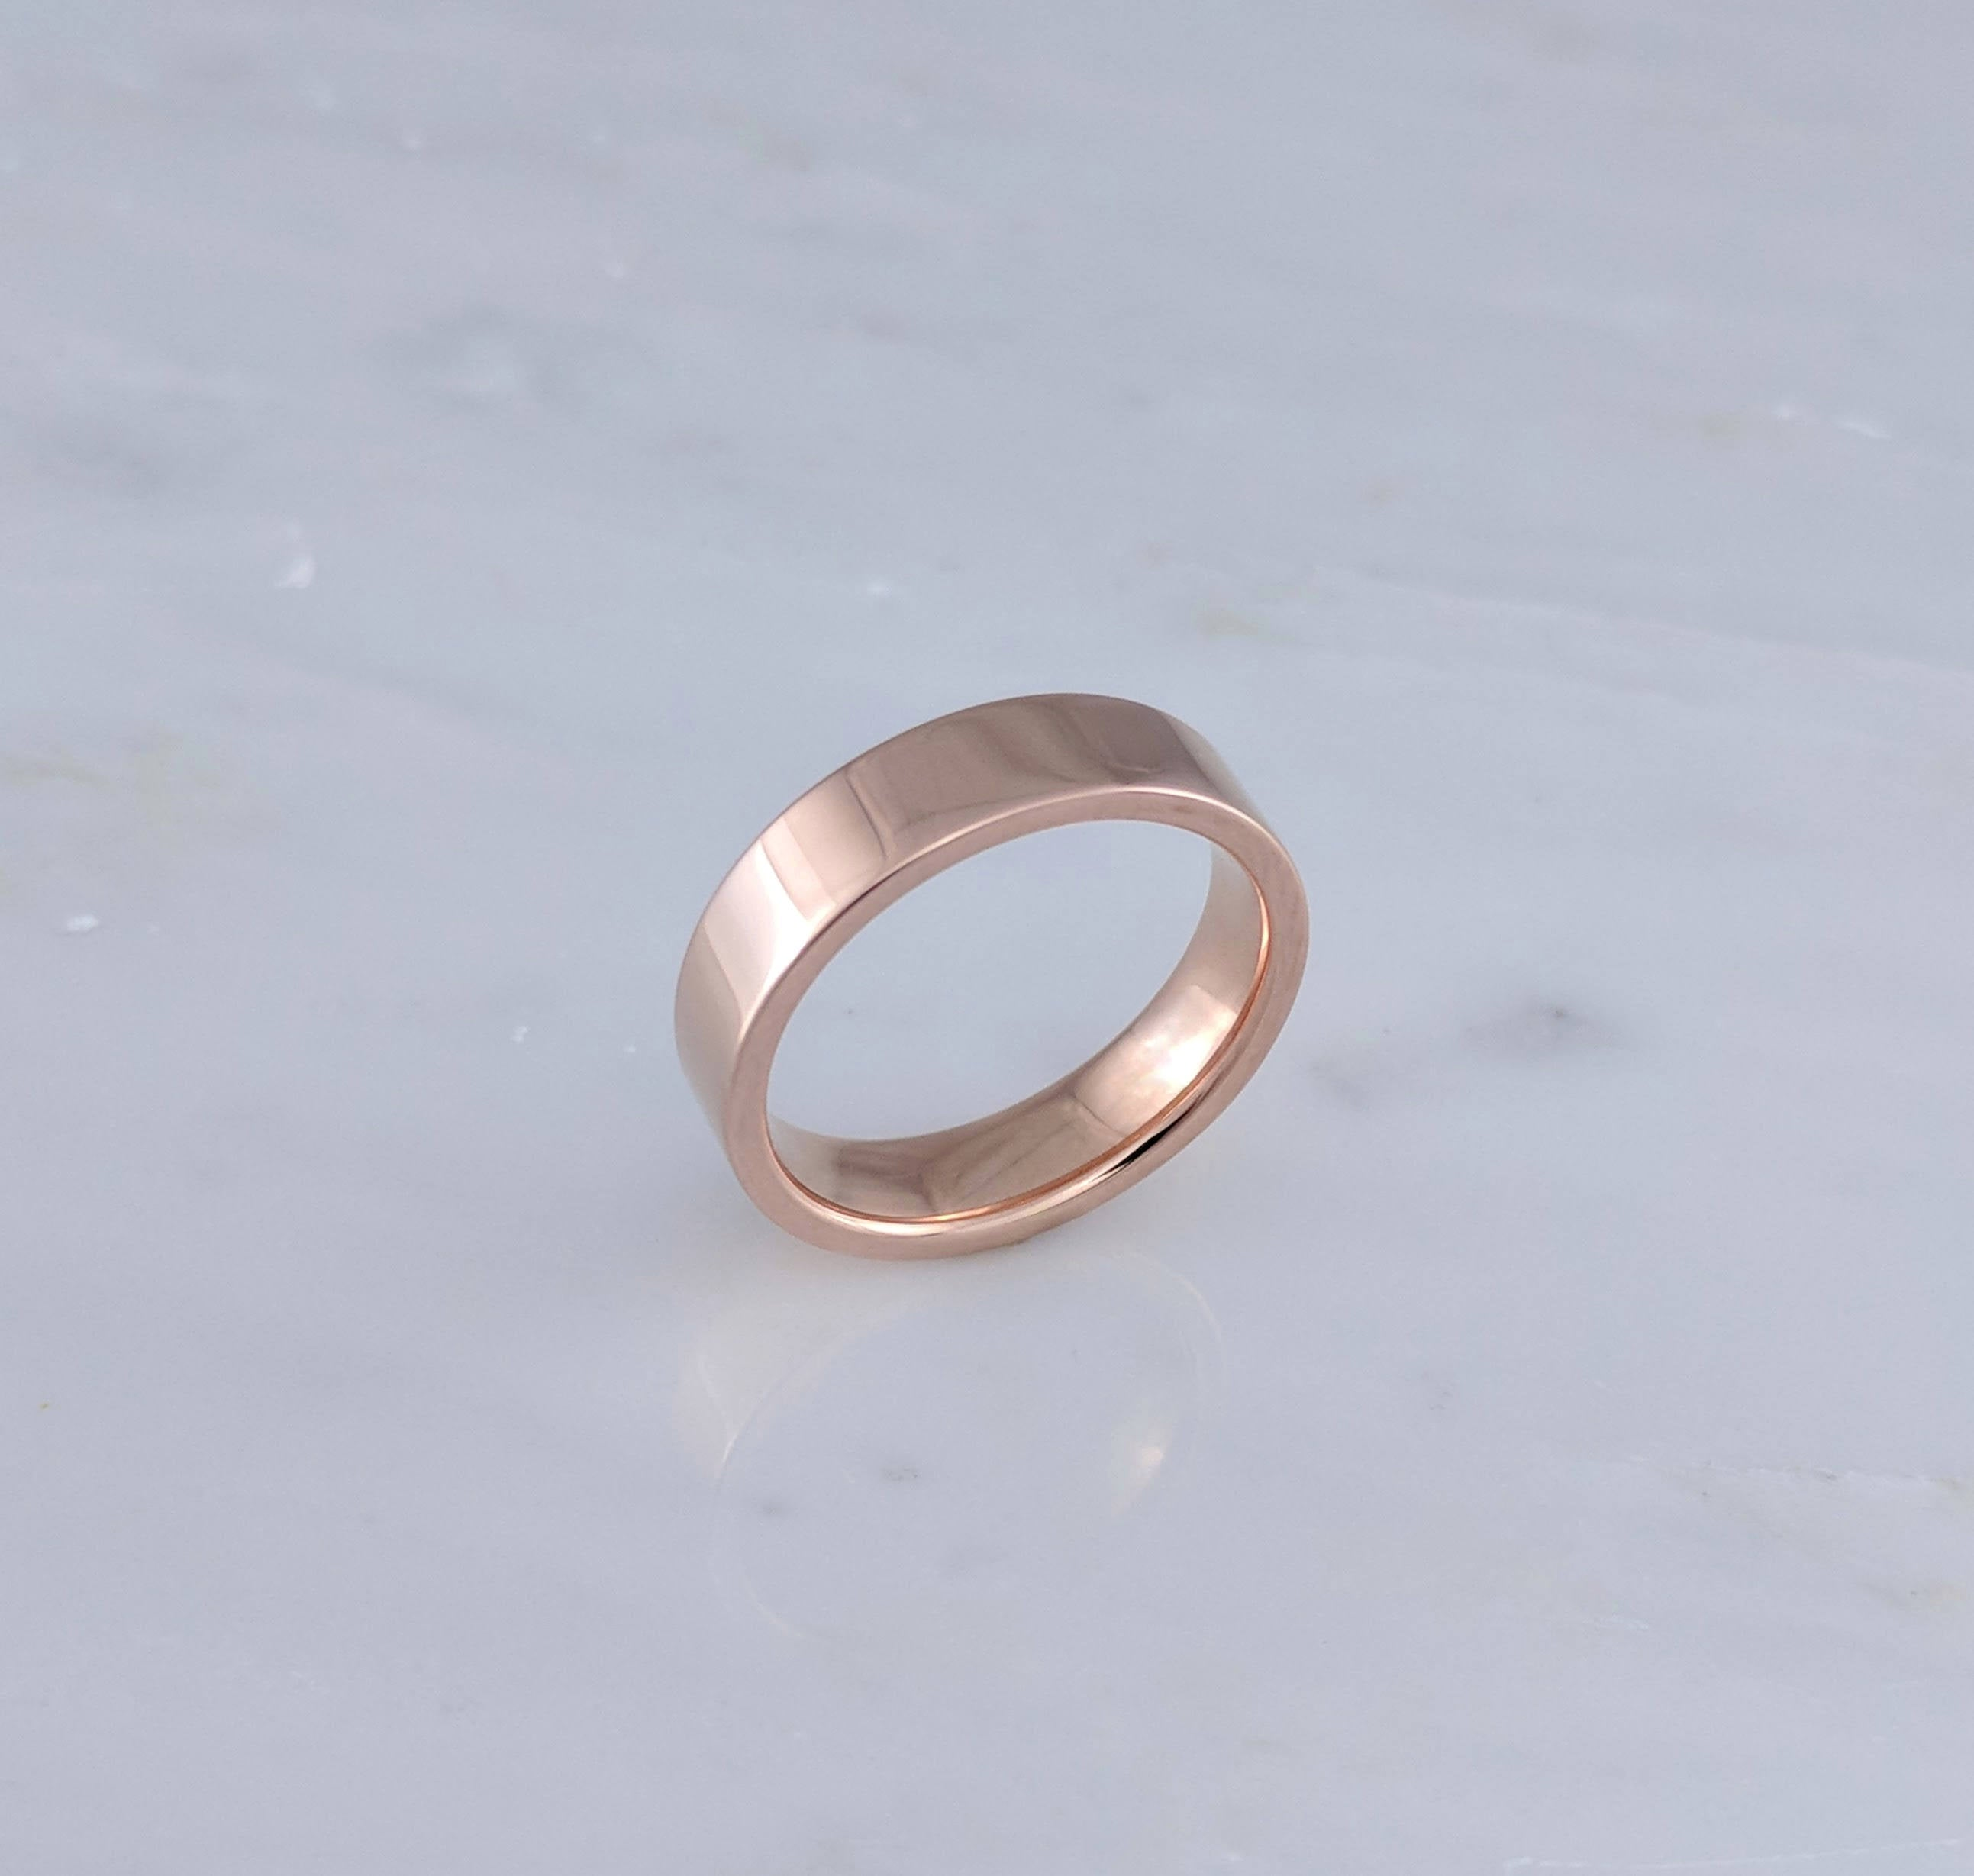 5mm Flat Band in 14K Rose Gold